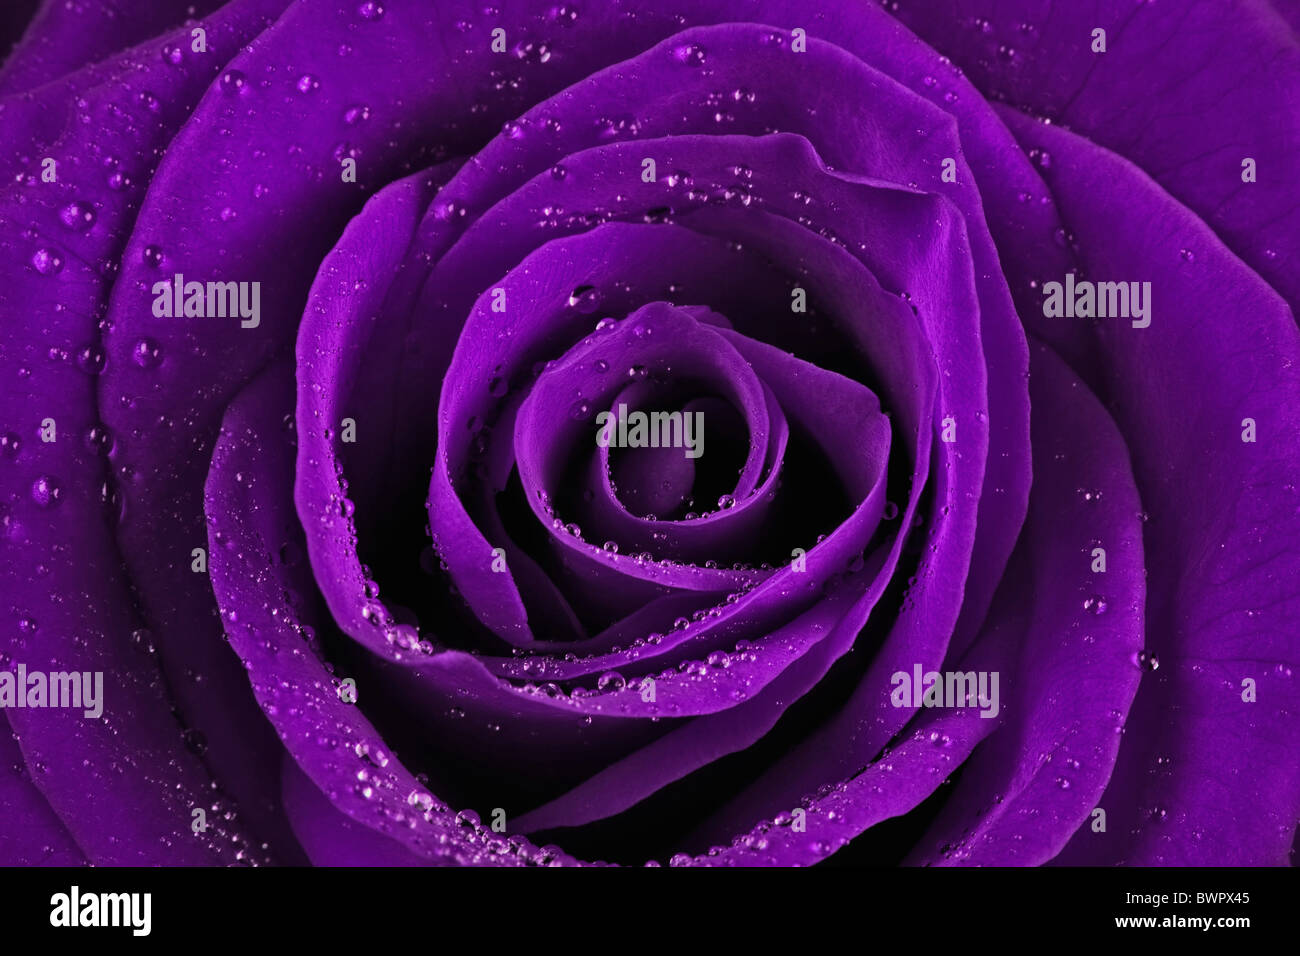 Rose Beauty Botany Close up Close-up Delicate Detail Extreme close up Elegance Flora Flower Flowers Fragil Stock Photo